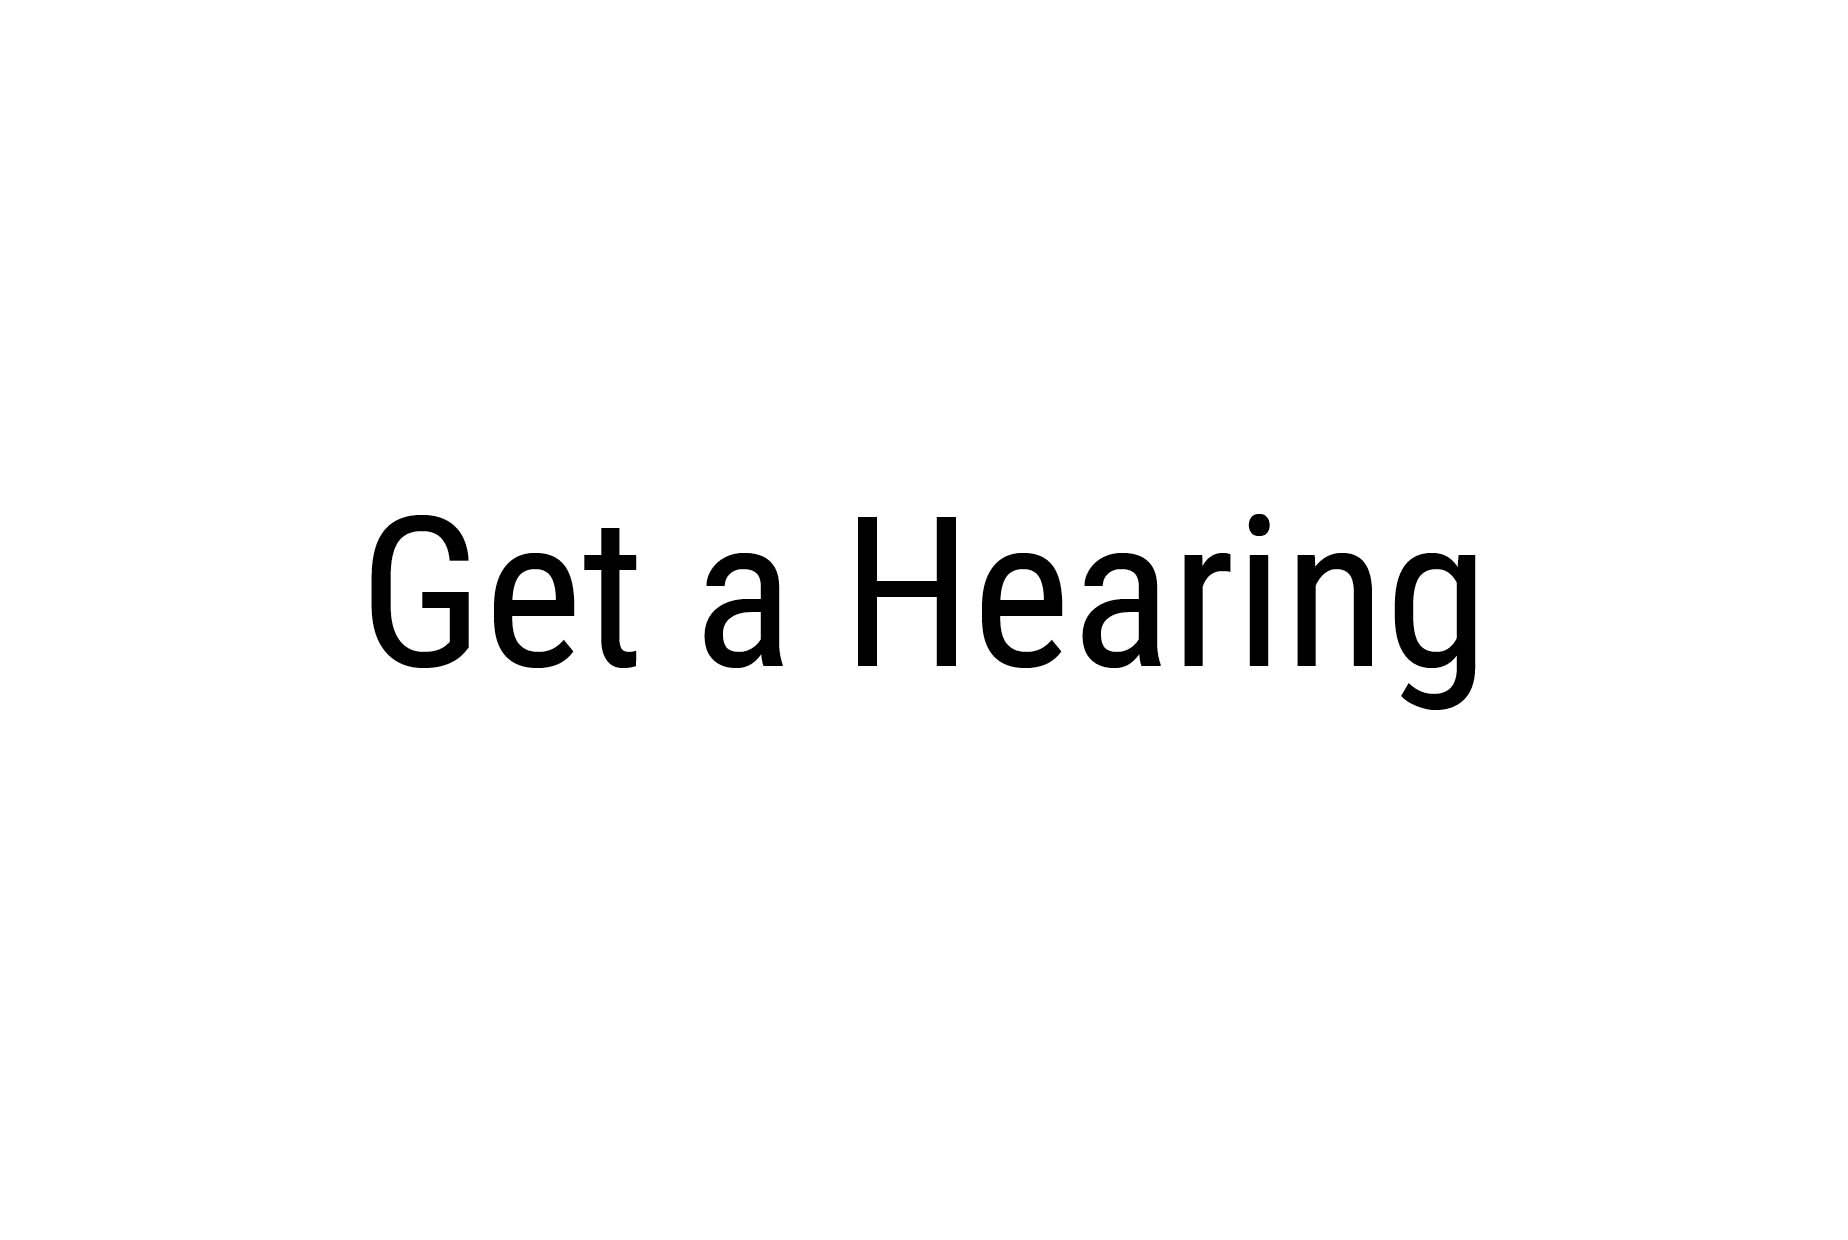 Get a hearing